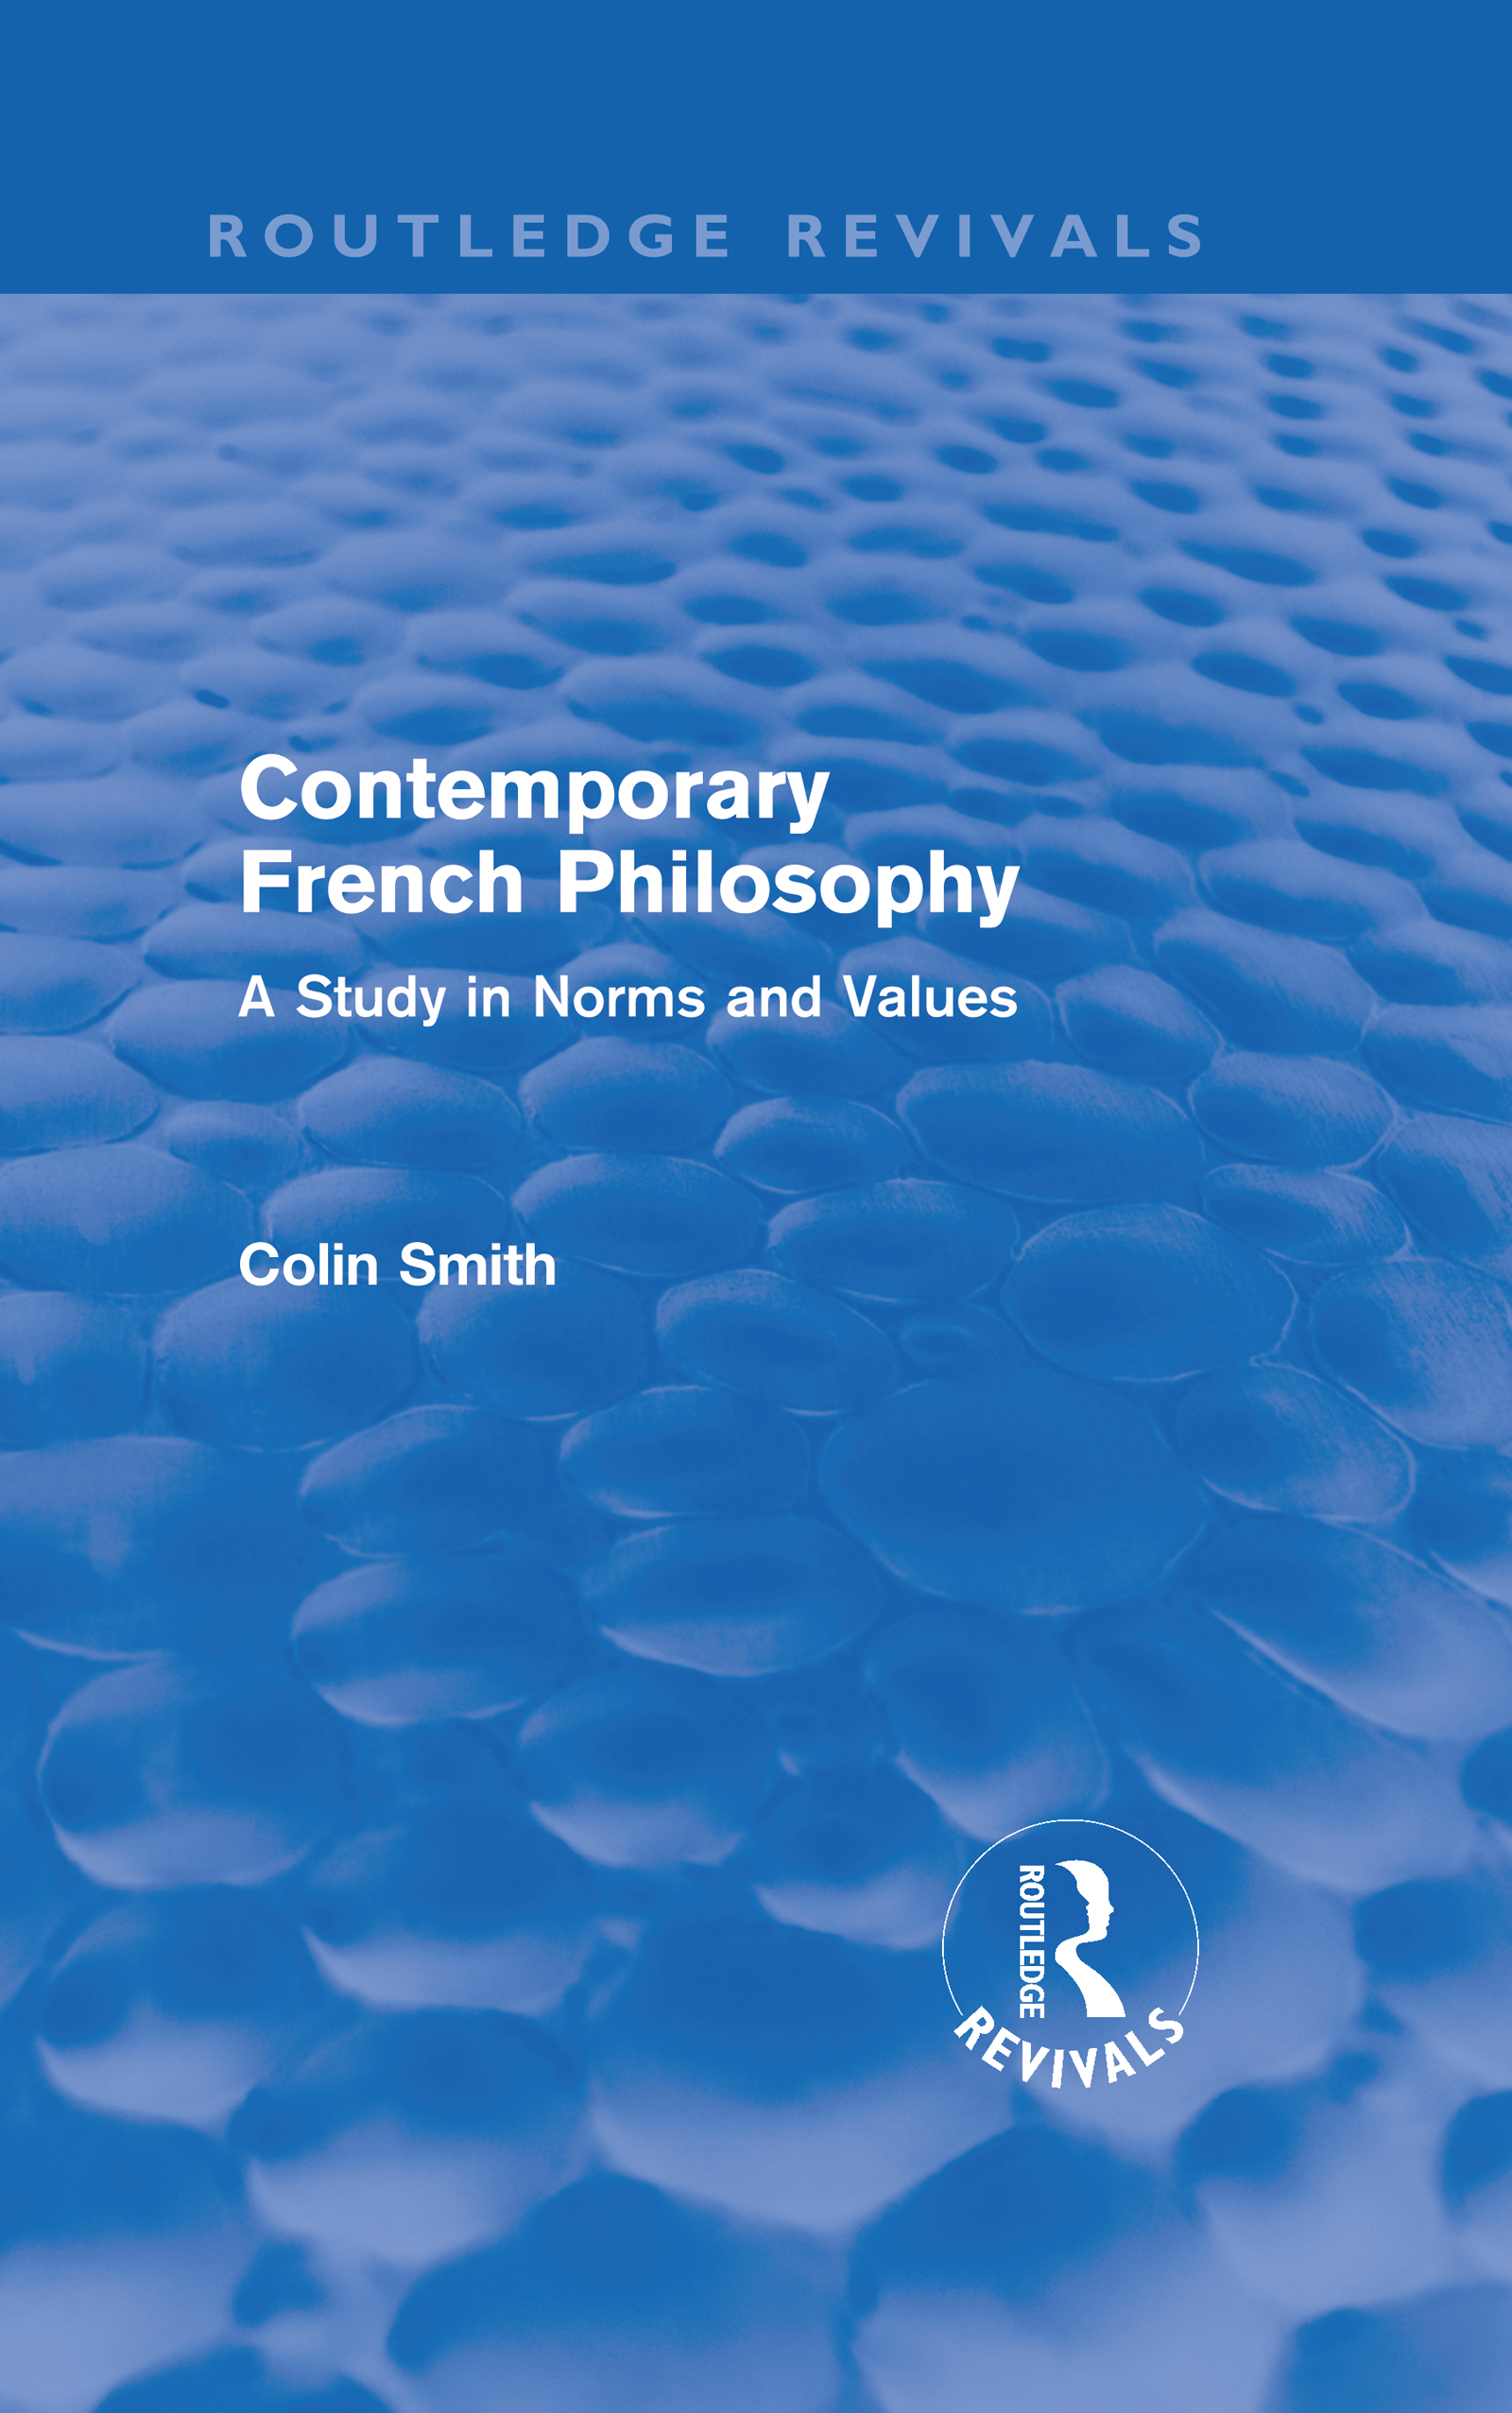 Contemporary French Philosophy (Routledge Revivals)